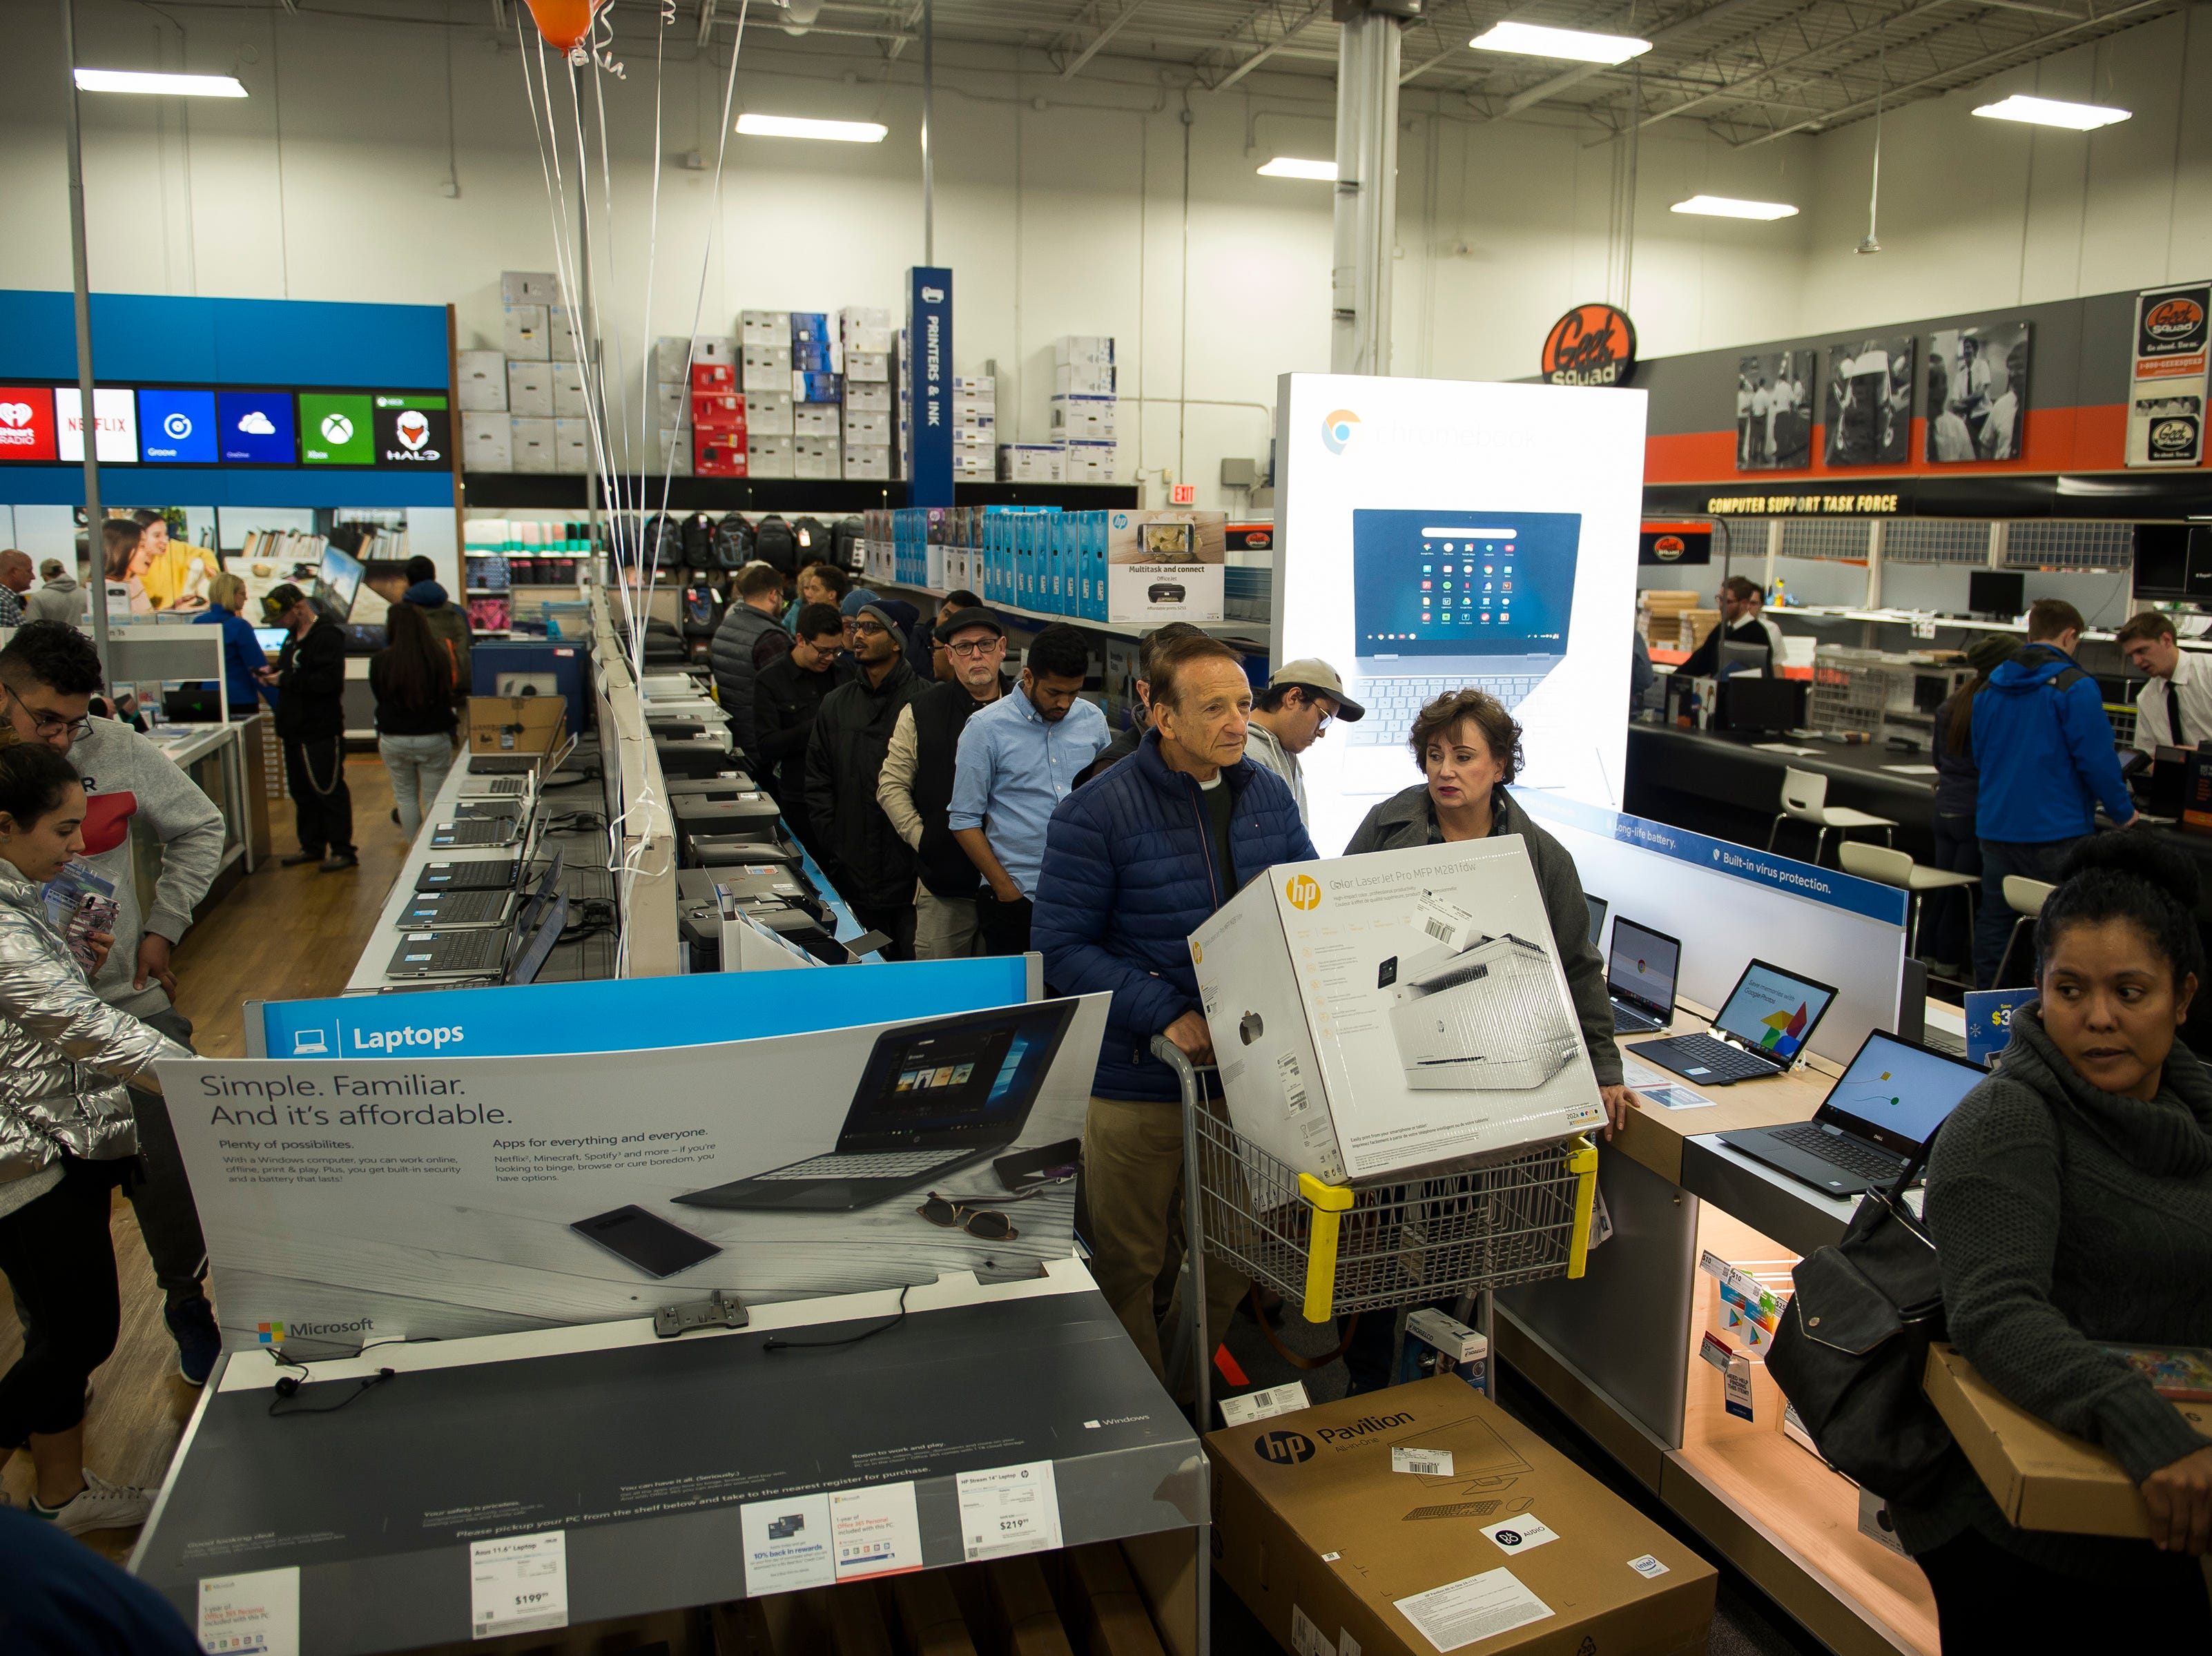 A line of customers waiting to check out begins to form around the store on Thursday, Nov. 22, 2018, at Best Buy in Fort Collins, Colo.